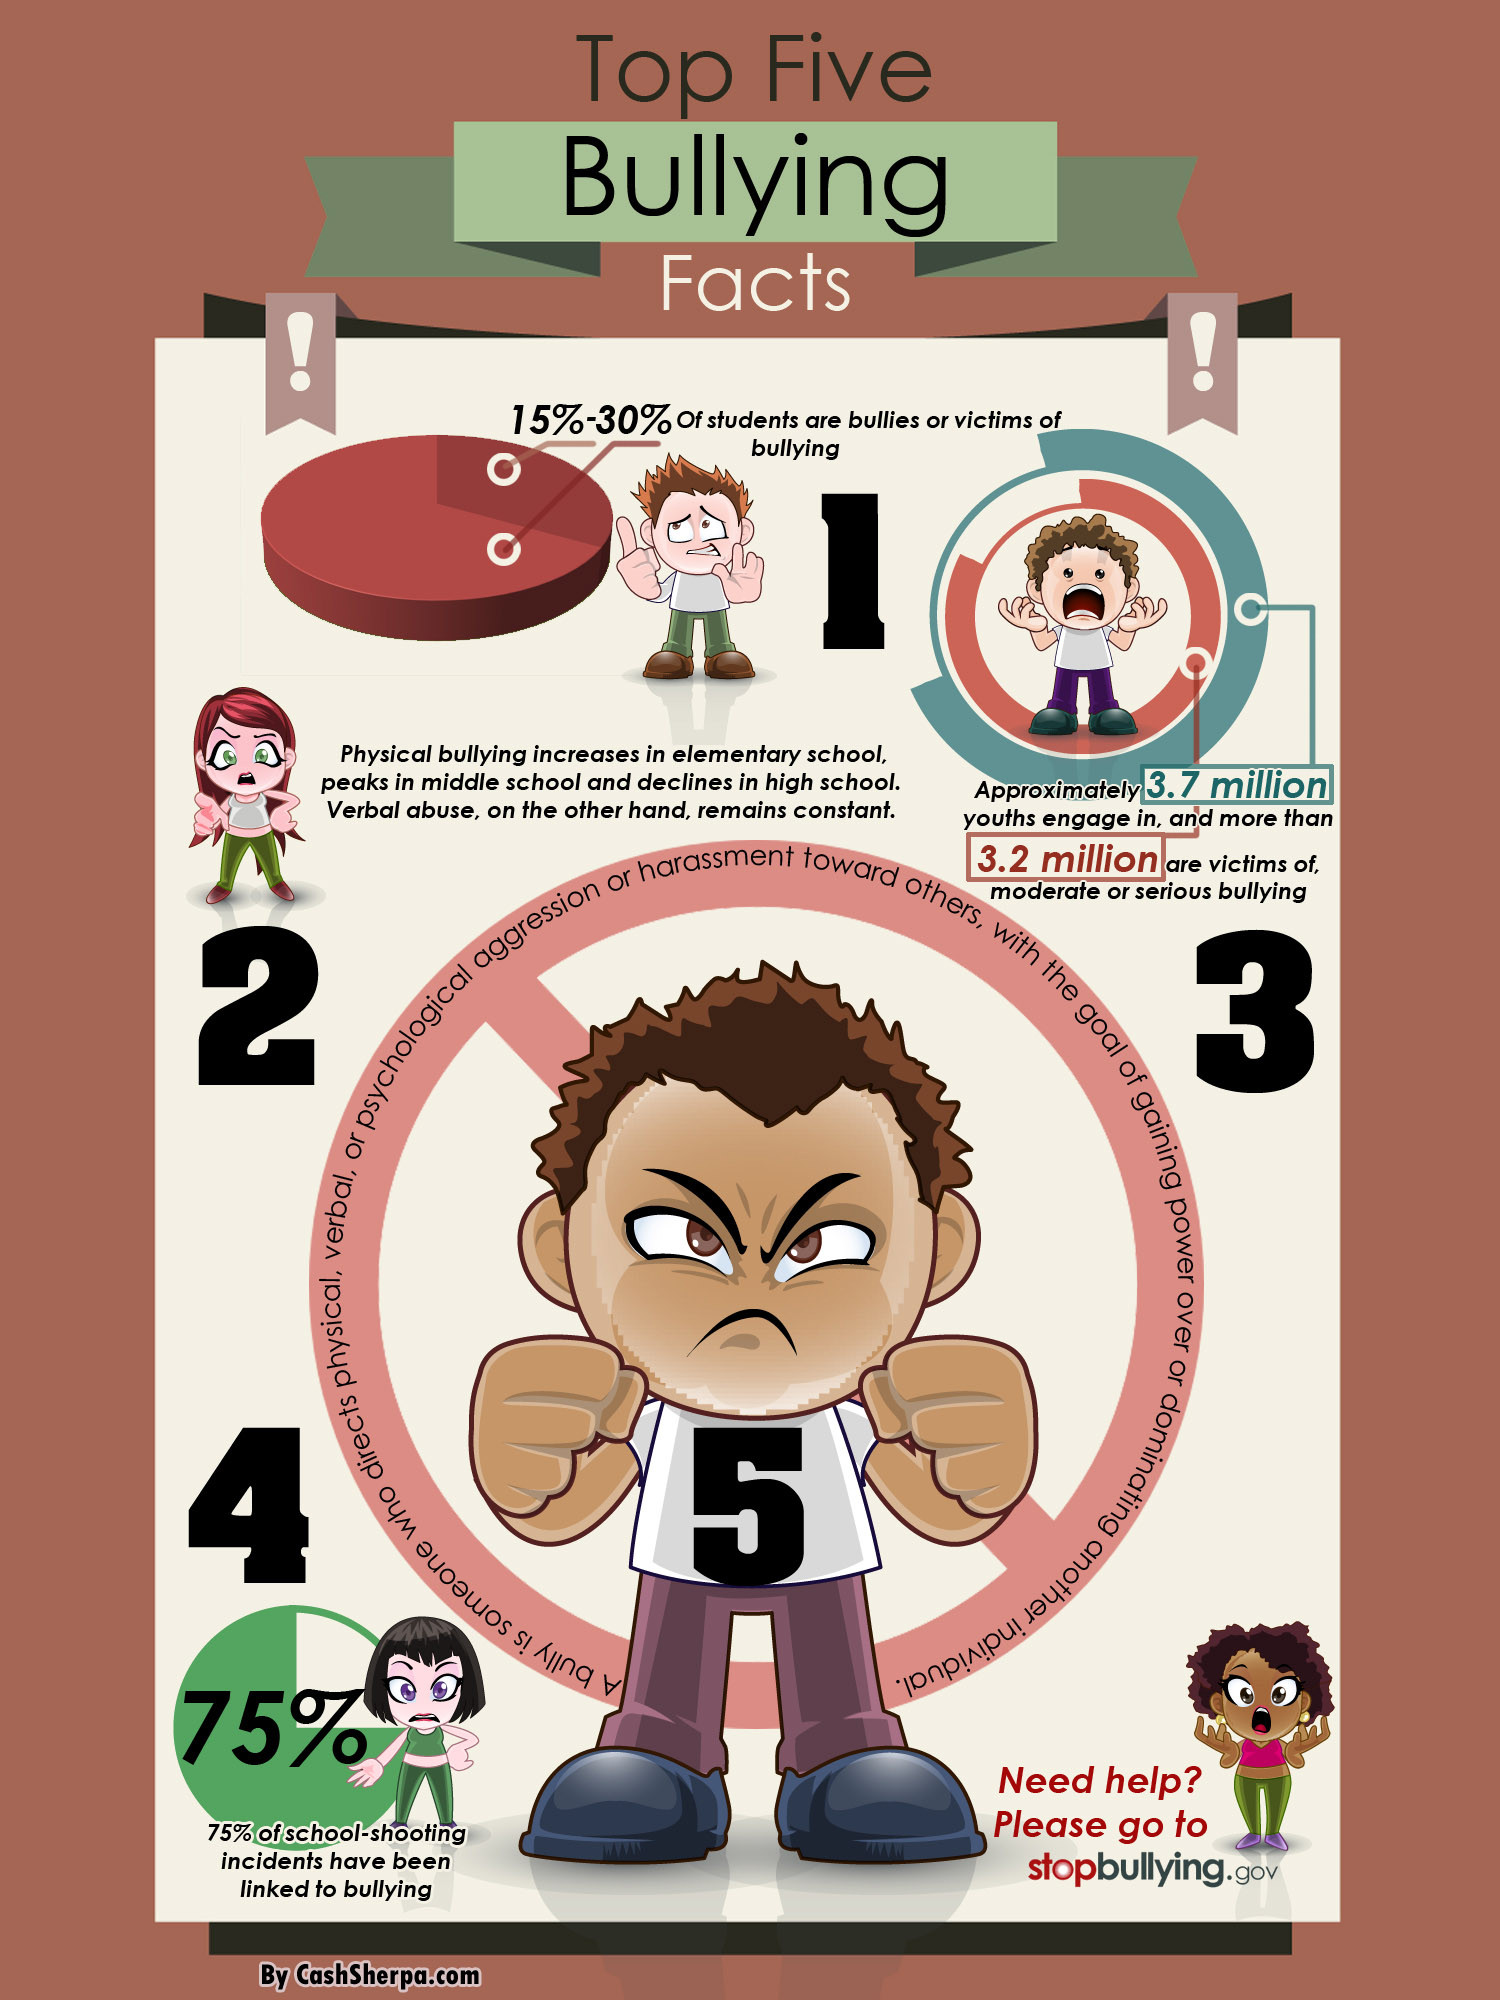 Top 5 Facts About Bullying Infographic